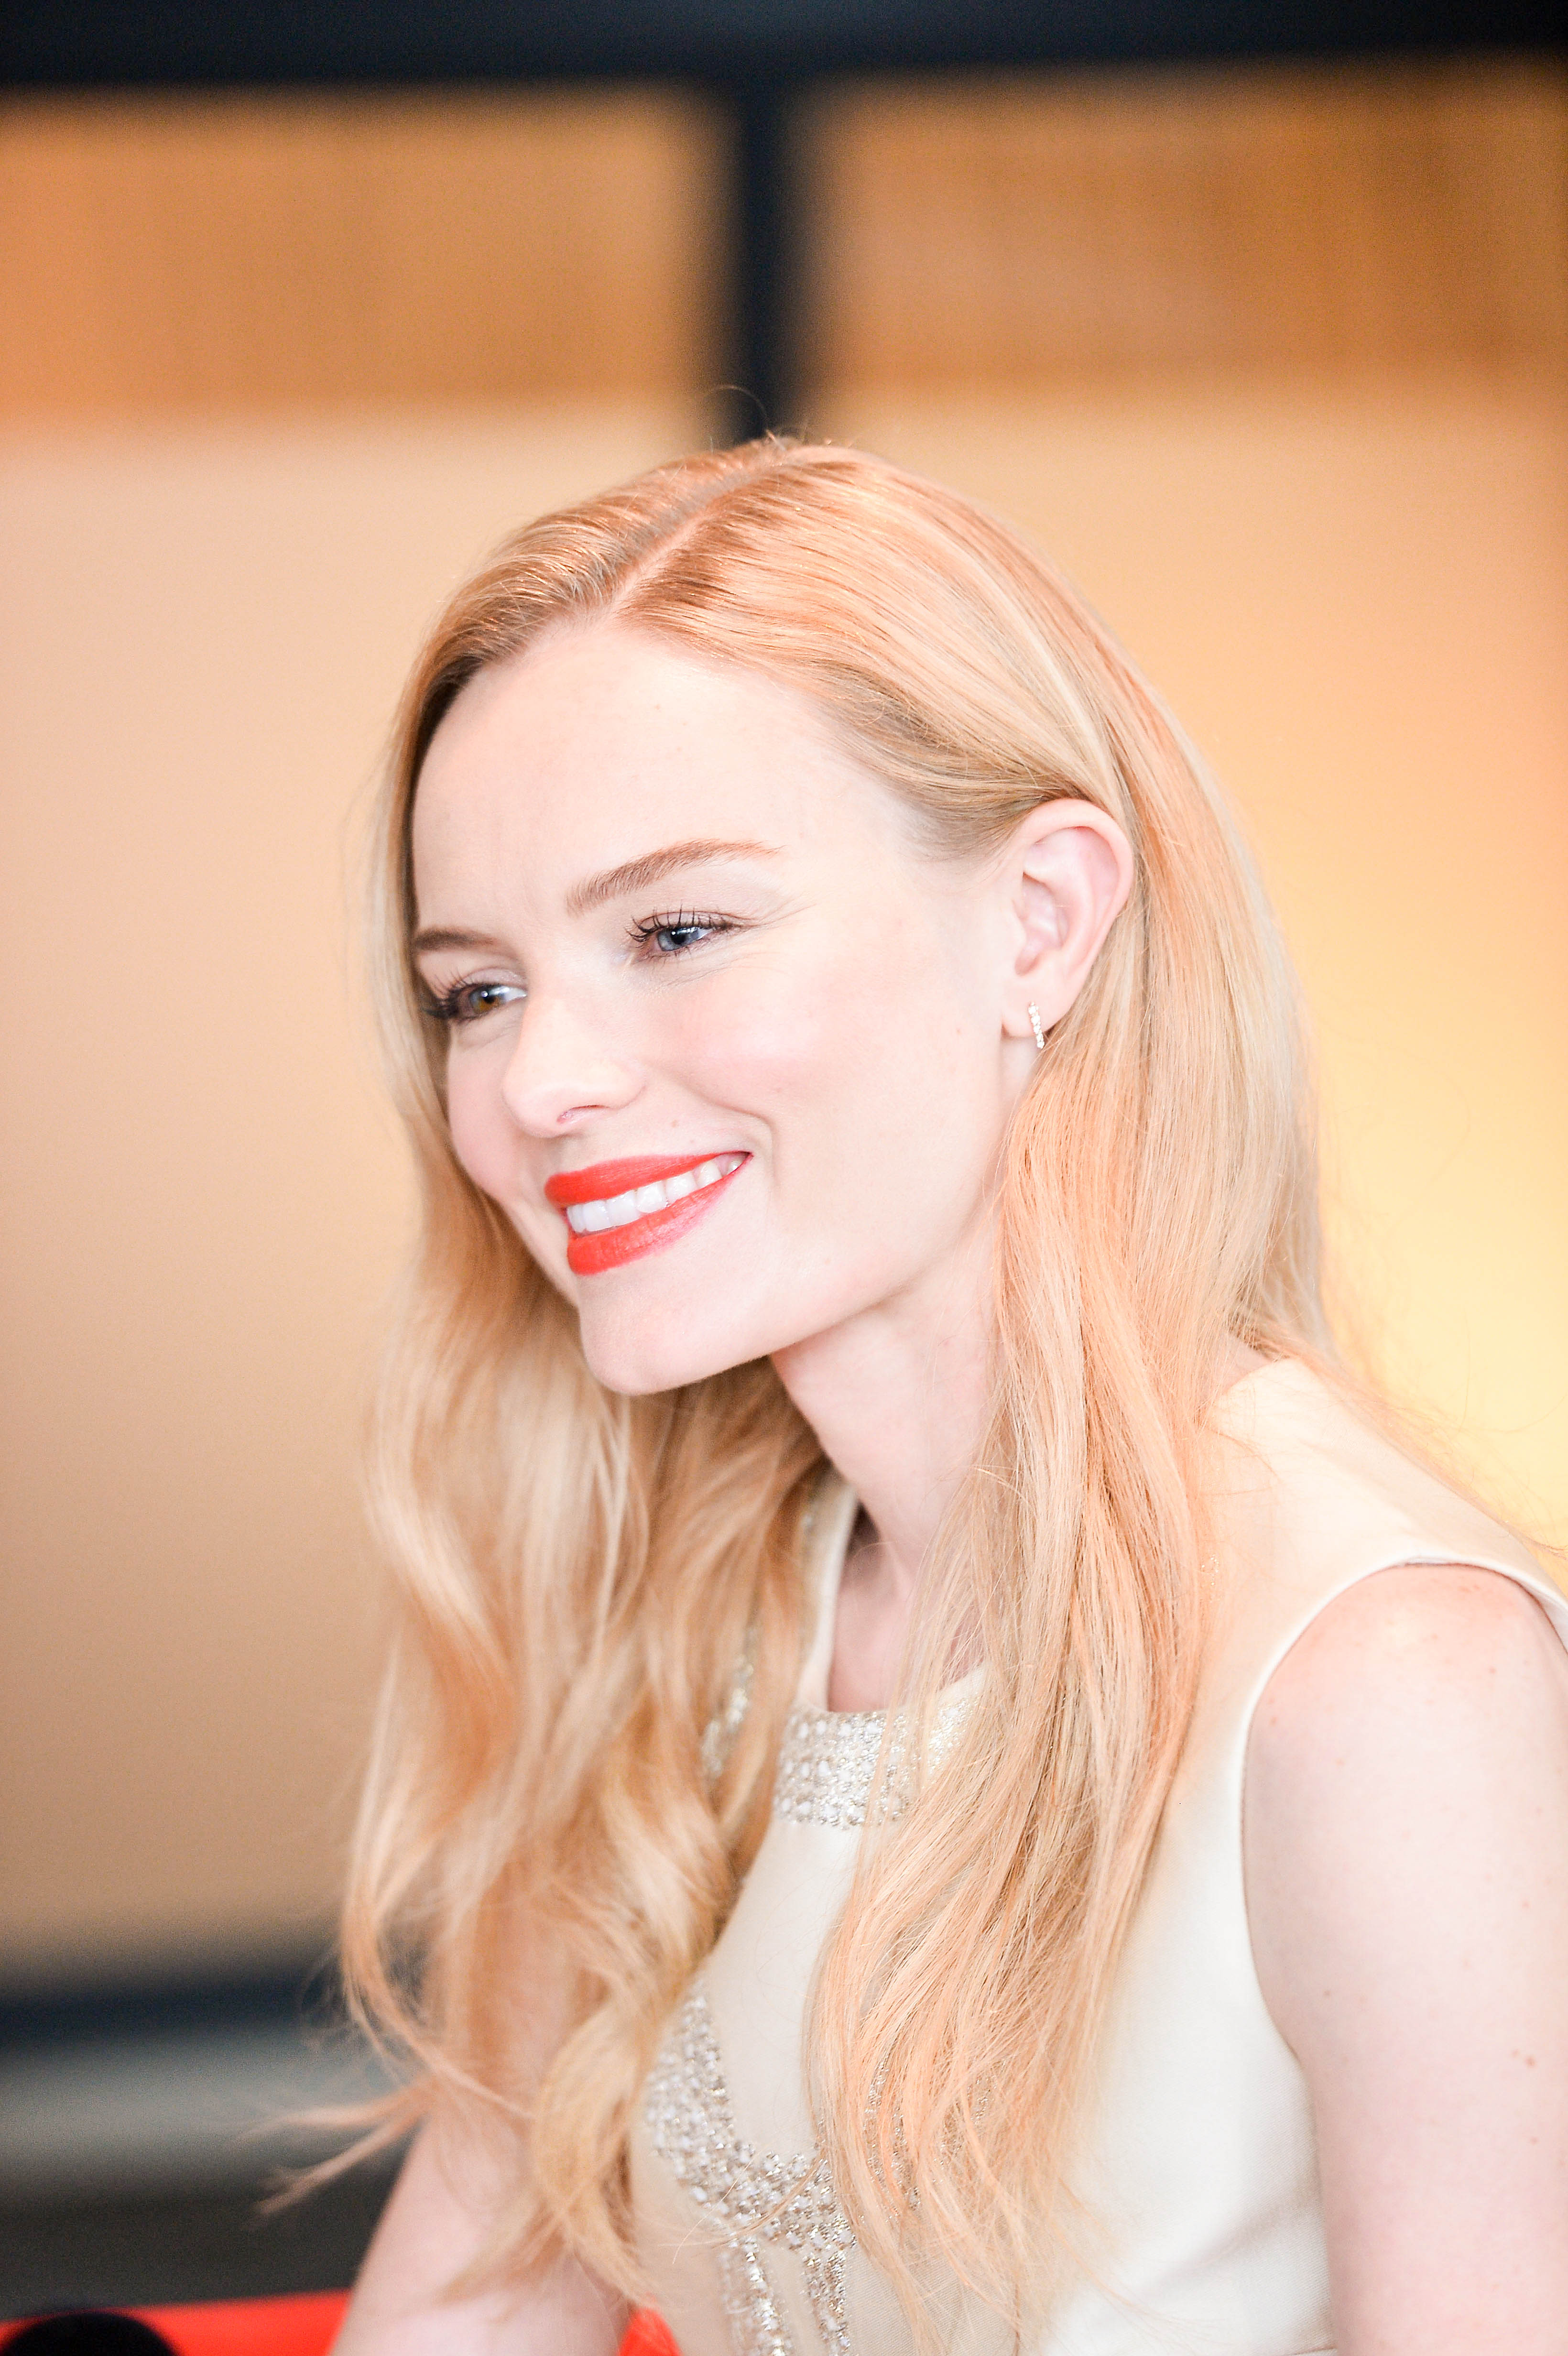 Quoted: Kate Bosworth in Singapore - LifestyleAsia Singapore Kate Bosworth